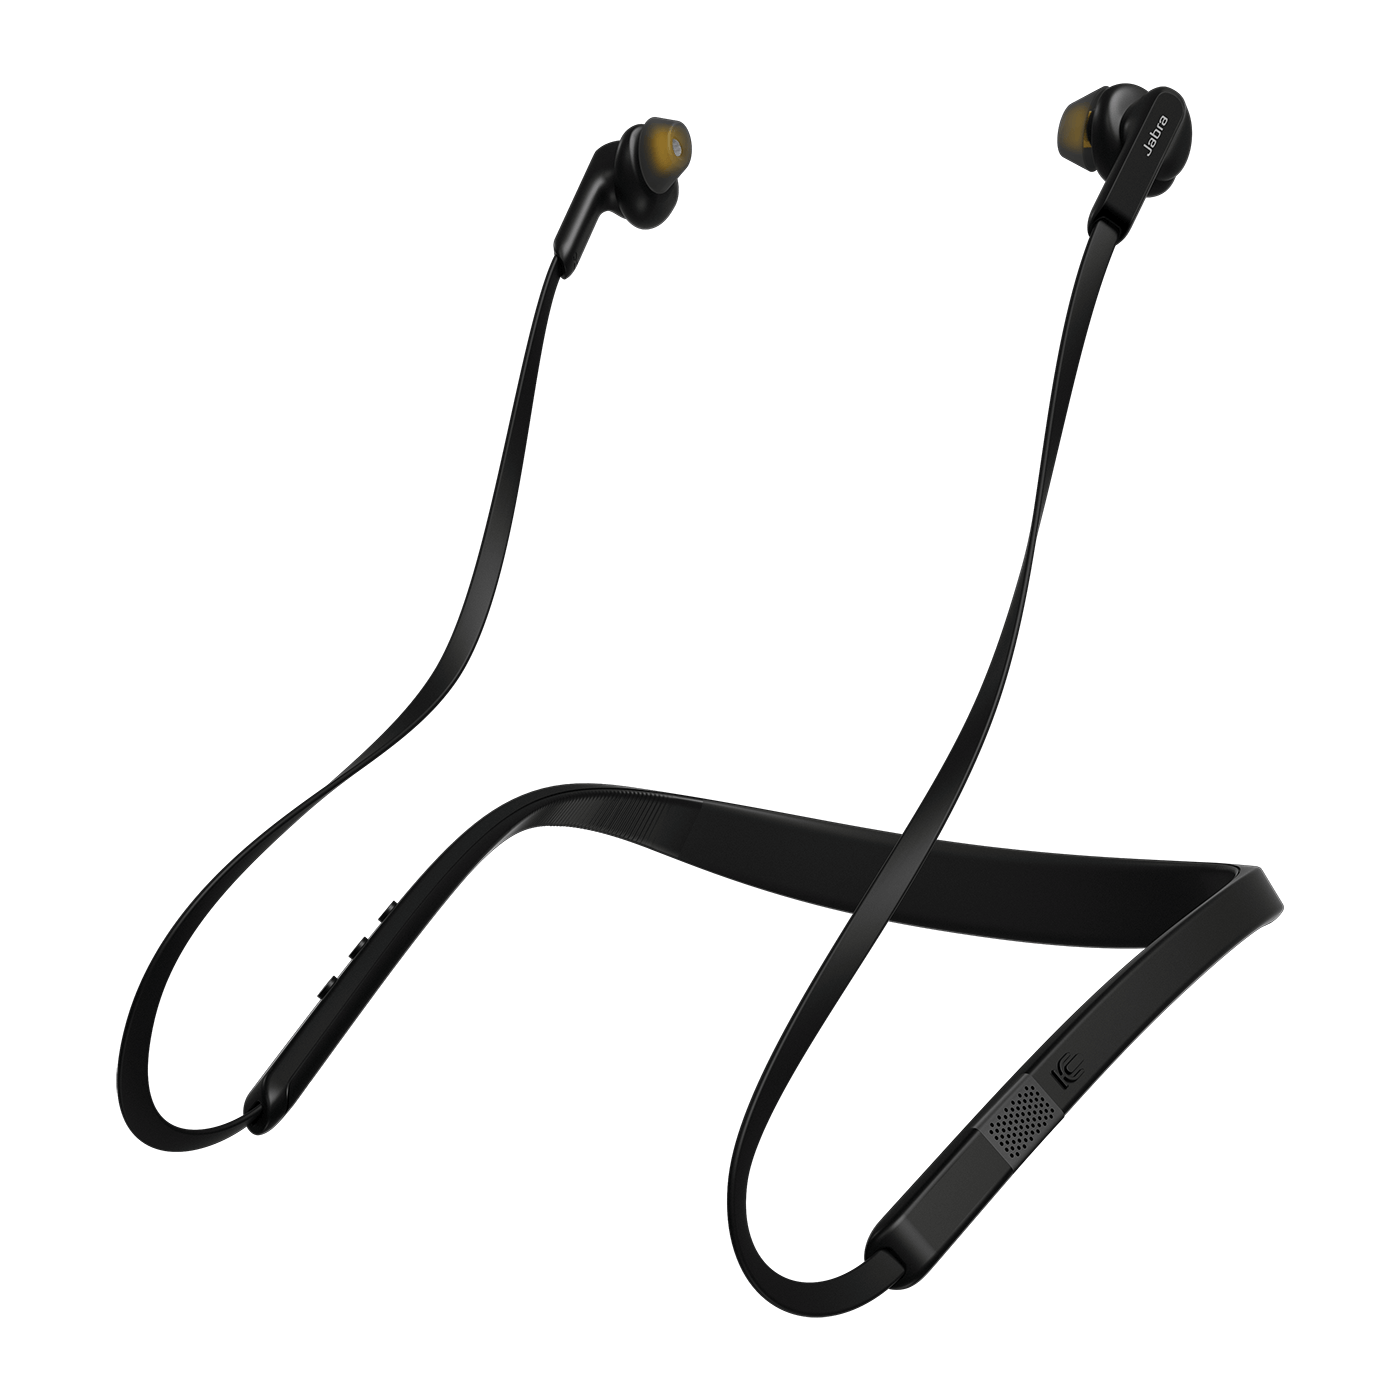 Fully wireless earbuds android - jabra wireless earbuds 65t